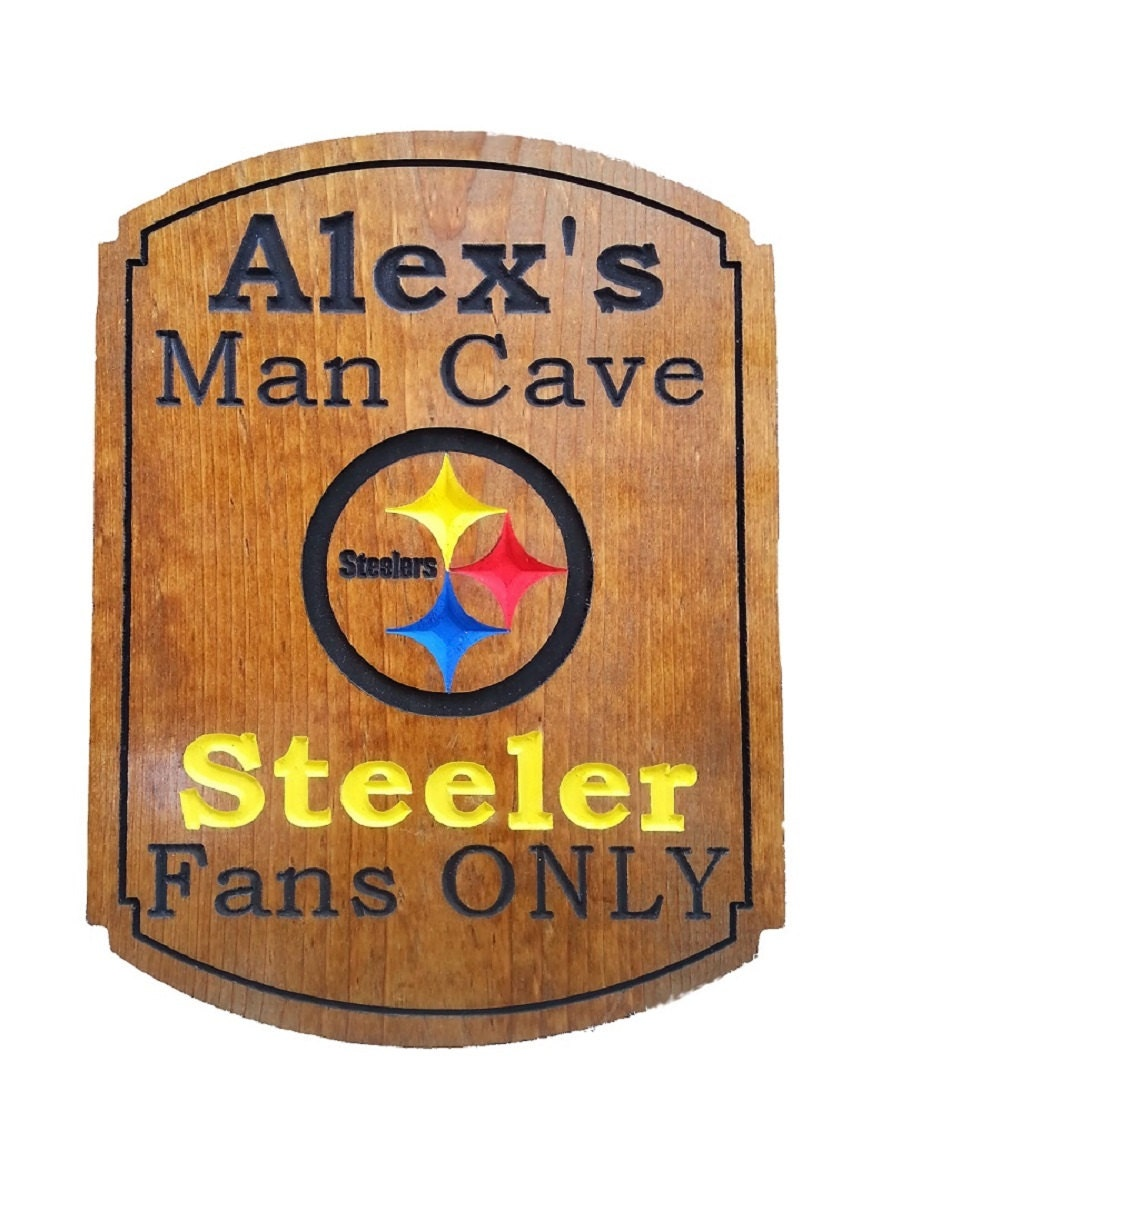 Customized Man Cave Signs : Nfl man cave sign customized personalized by ocwoodcreations